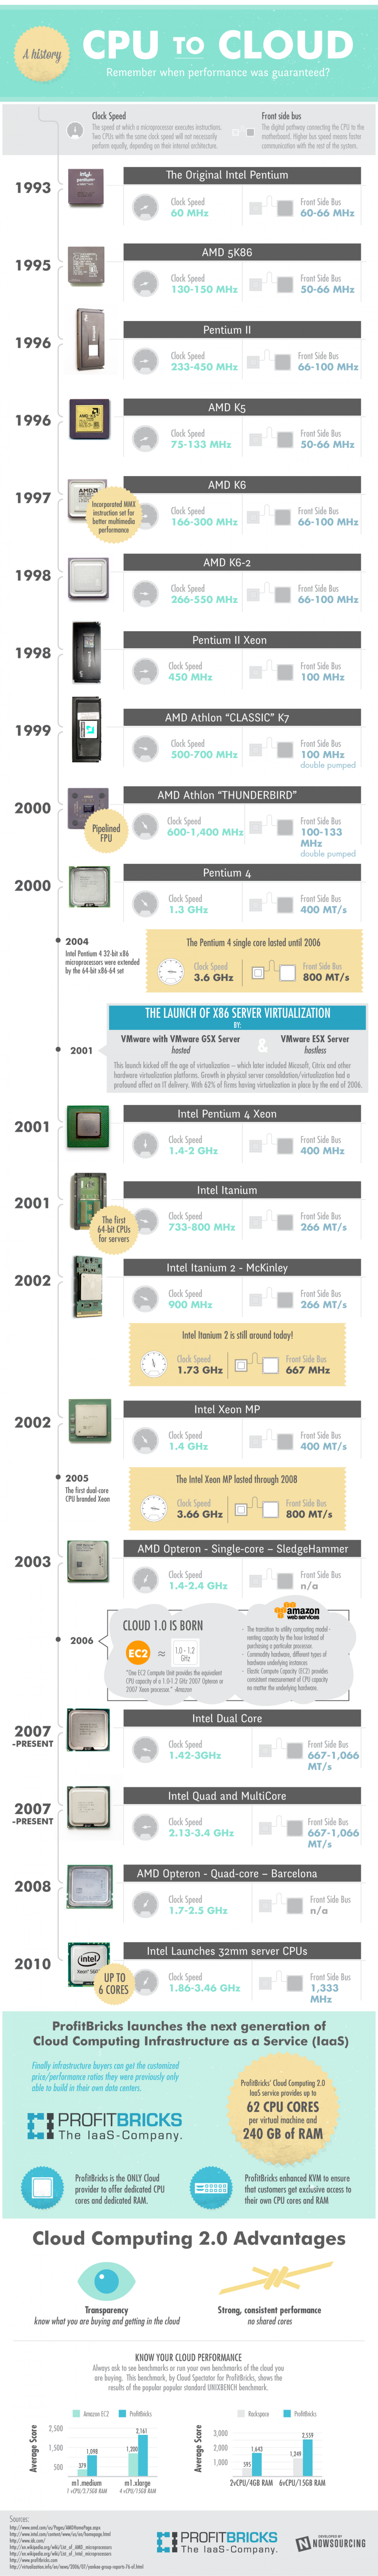 CPU to Cloud Infographic